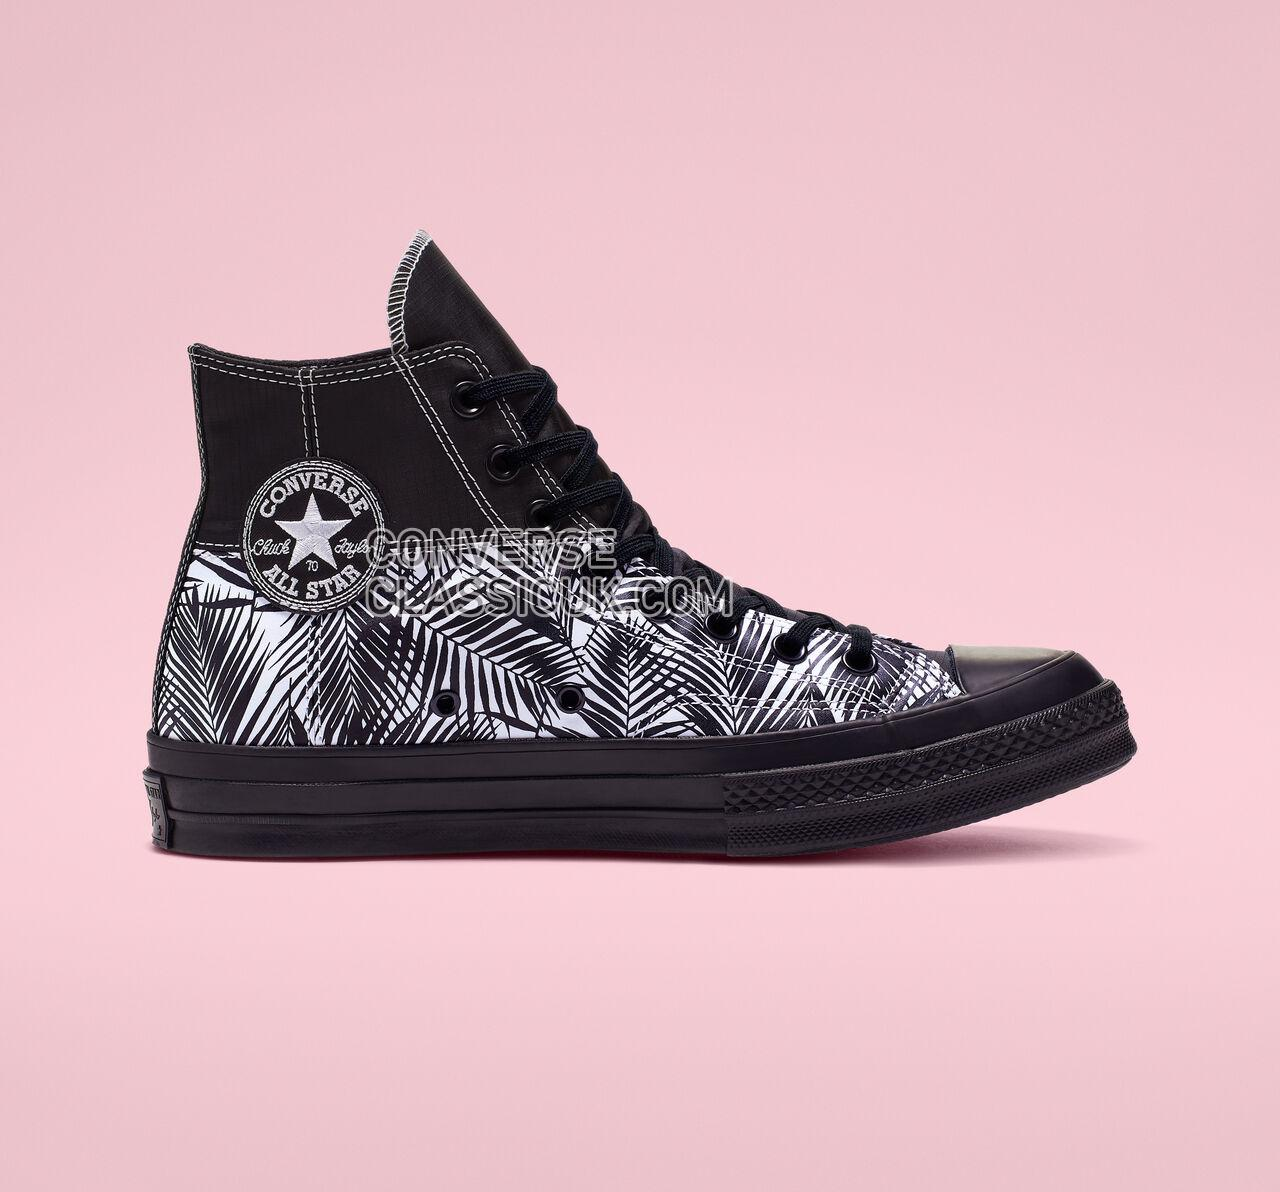 Converse Chuck 70 Get Tubed High Top Mens Womens Unisex 164086C Black/White/Black Shoes